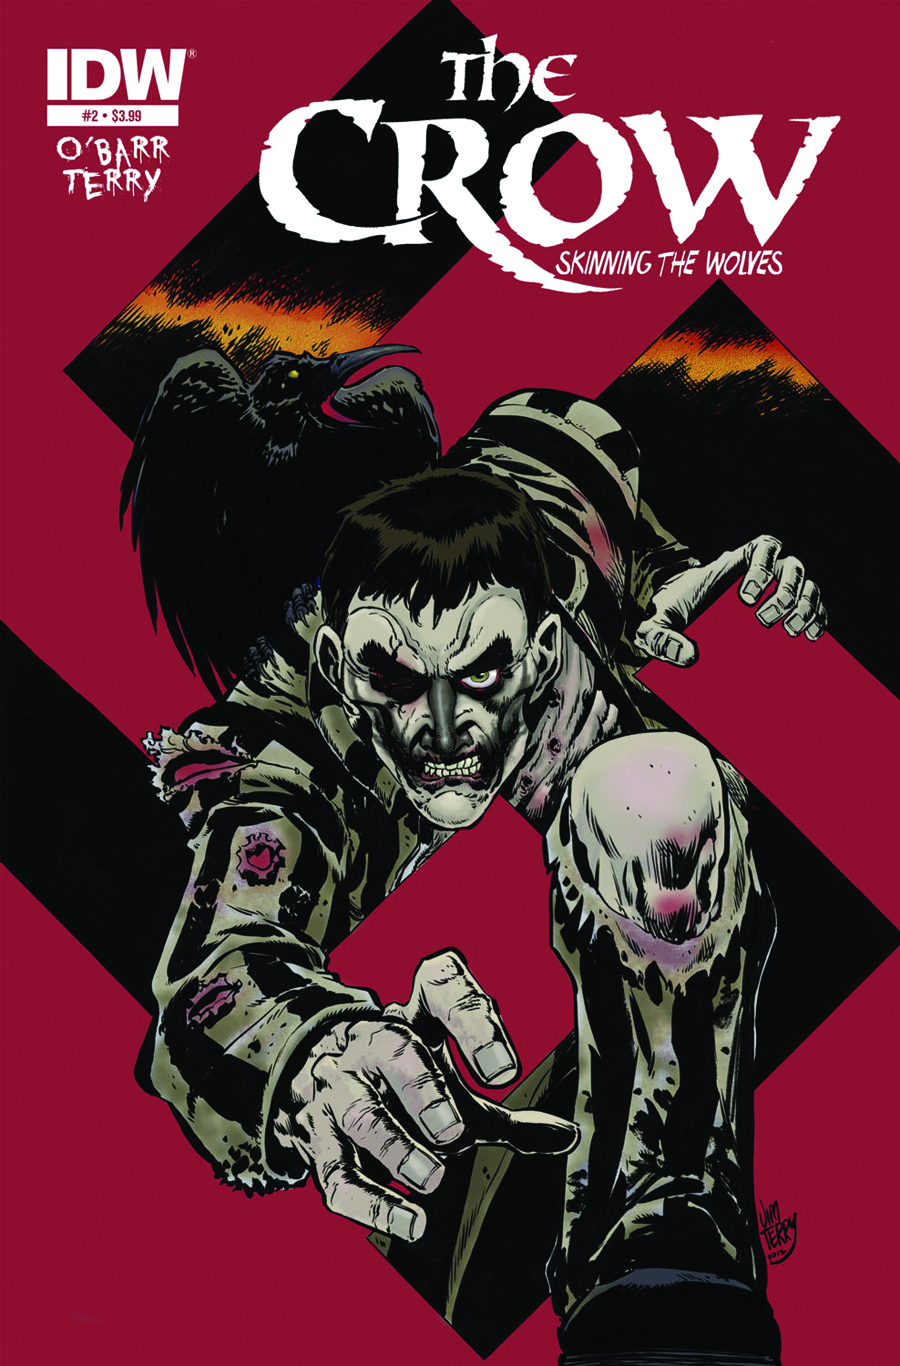 CROW SKINNING THE WOLVES #2